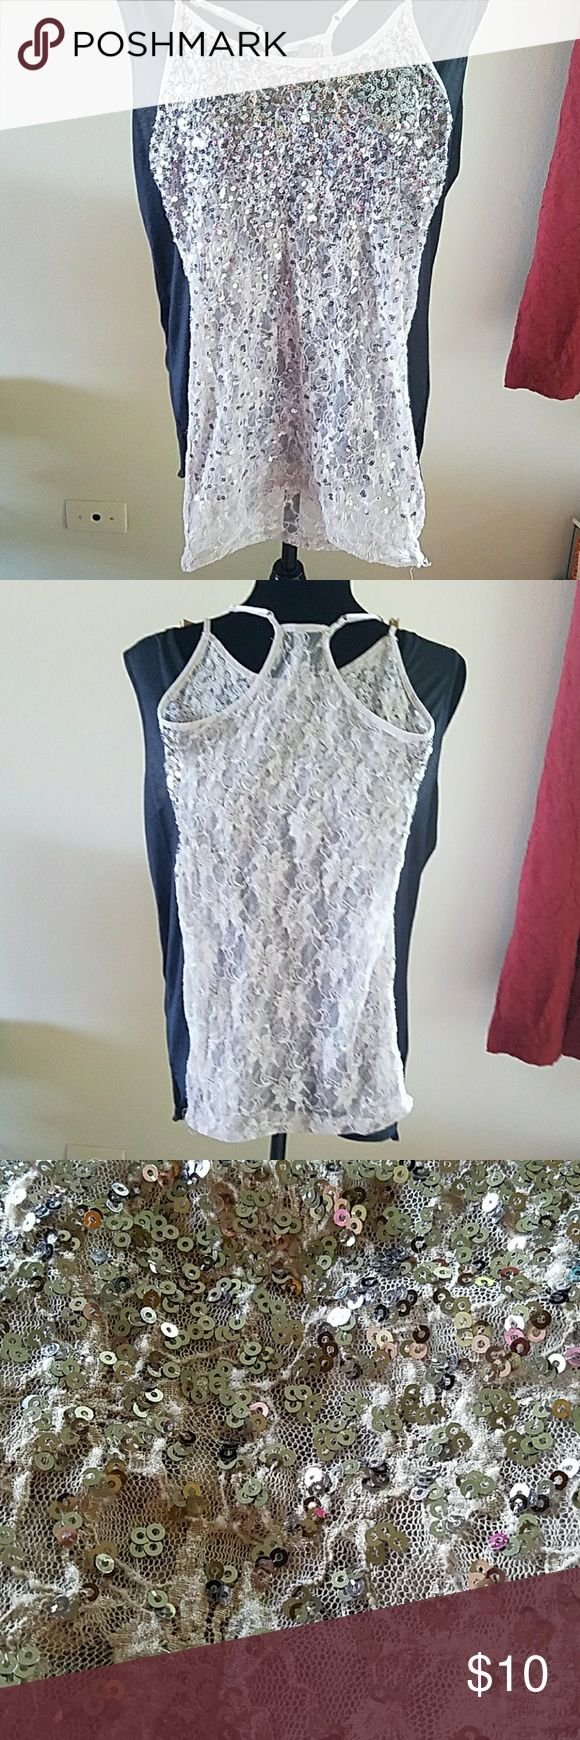 Sheer sparkle top! This is a perfect party Short! Mauve colored lace with silver sparkle sequins and a razorback. Wore this a few times and there is a little sign of wear on the lace, but still lots of life left! Charlotte Russe Tops Tank Tops